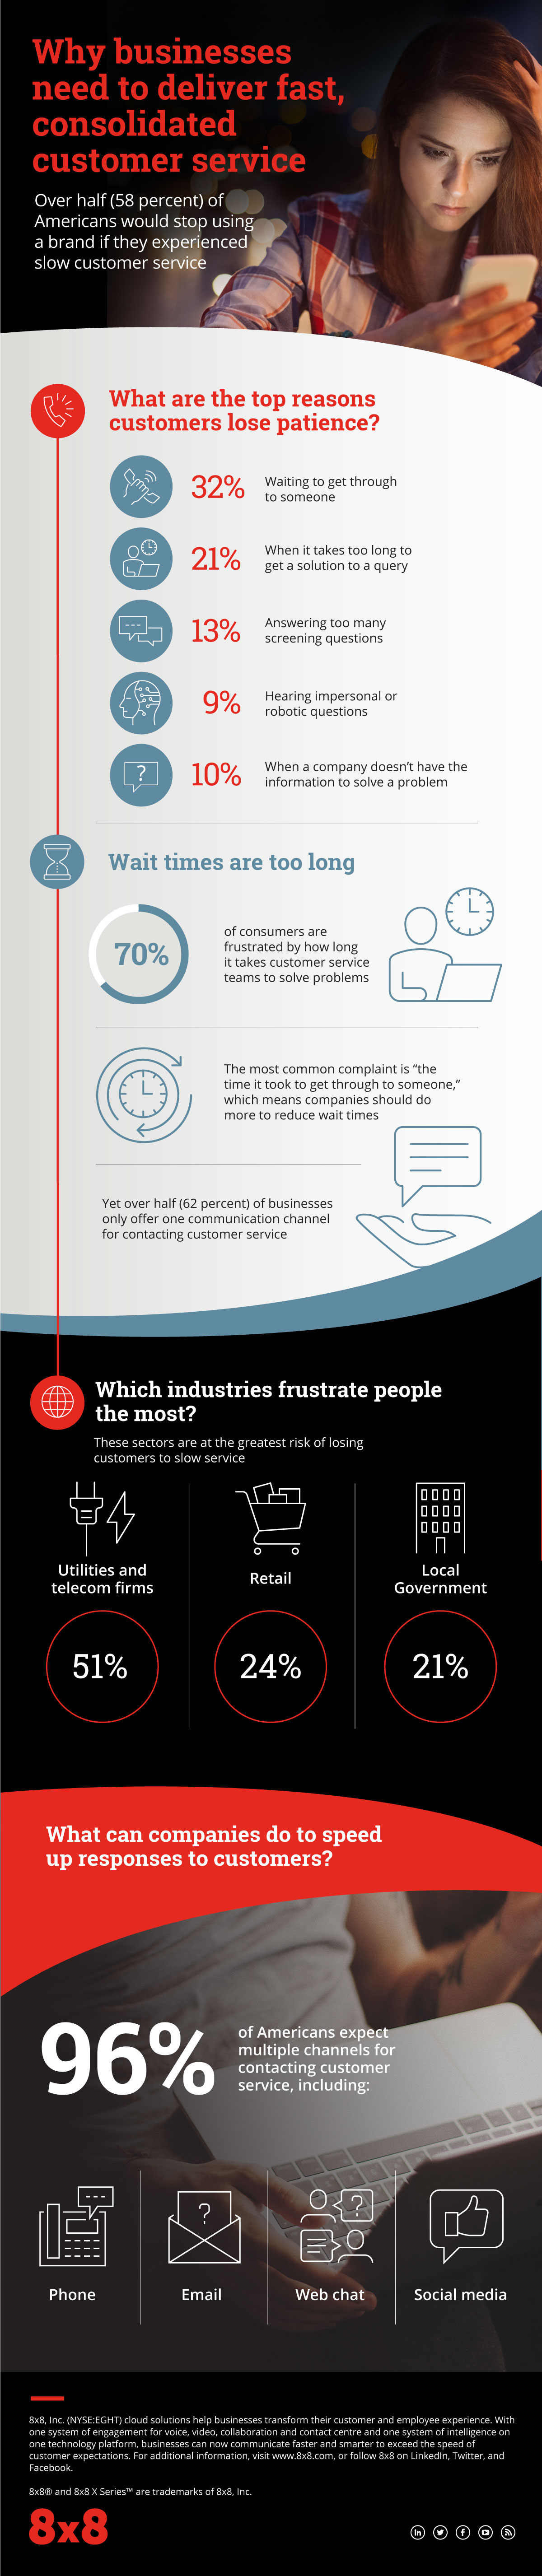 Why-businesses-need-to-deliver-fast-consolidated-customer-service.jpg